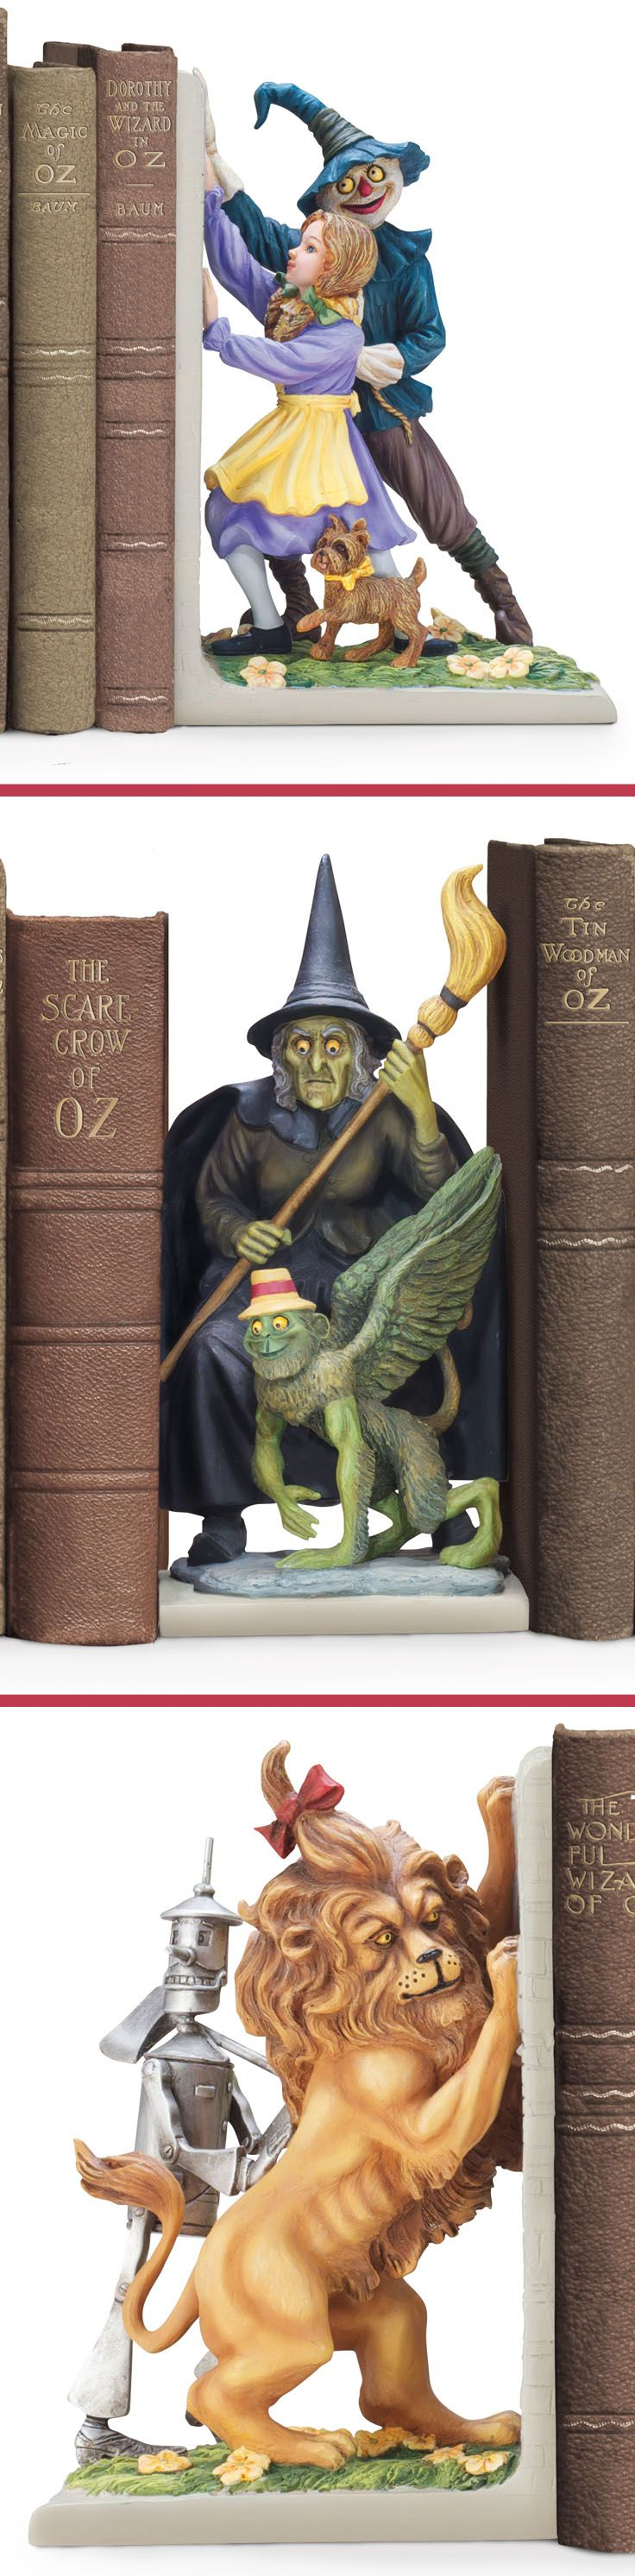 Wizard of oz christmas decorations uk - Wizard Of Oz Be Whisked Away To L Frank Baum S Magical Land With The Wonderful World Of Oz Bookends Collection A Limited Edition First